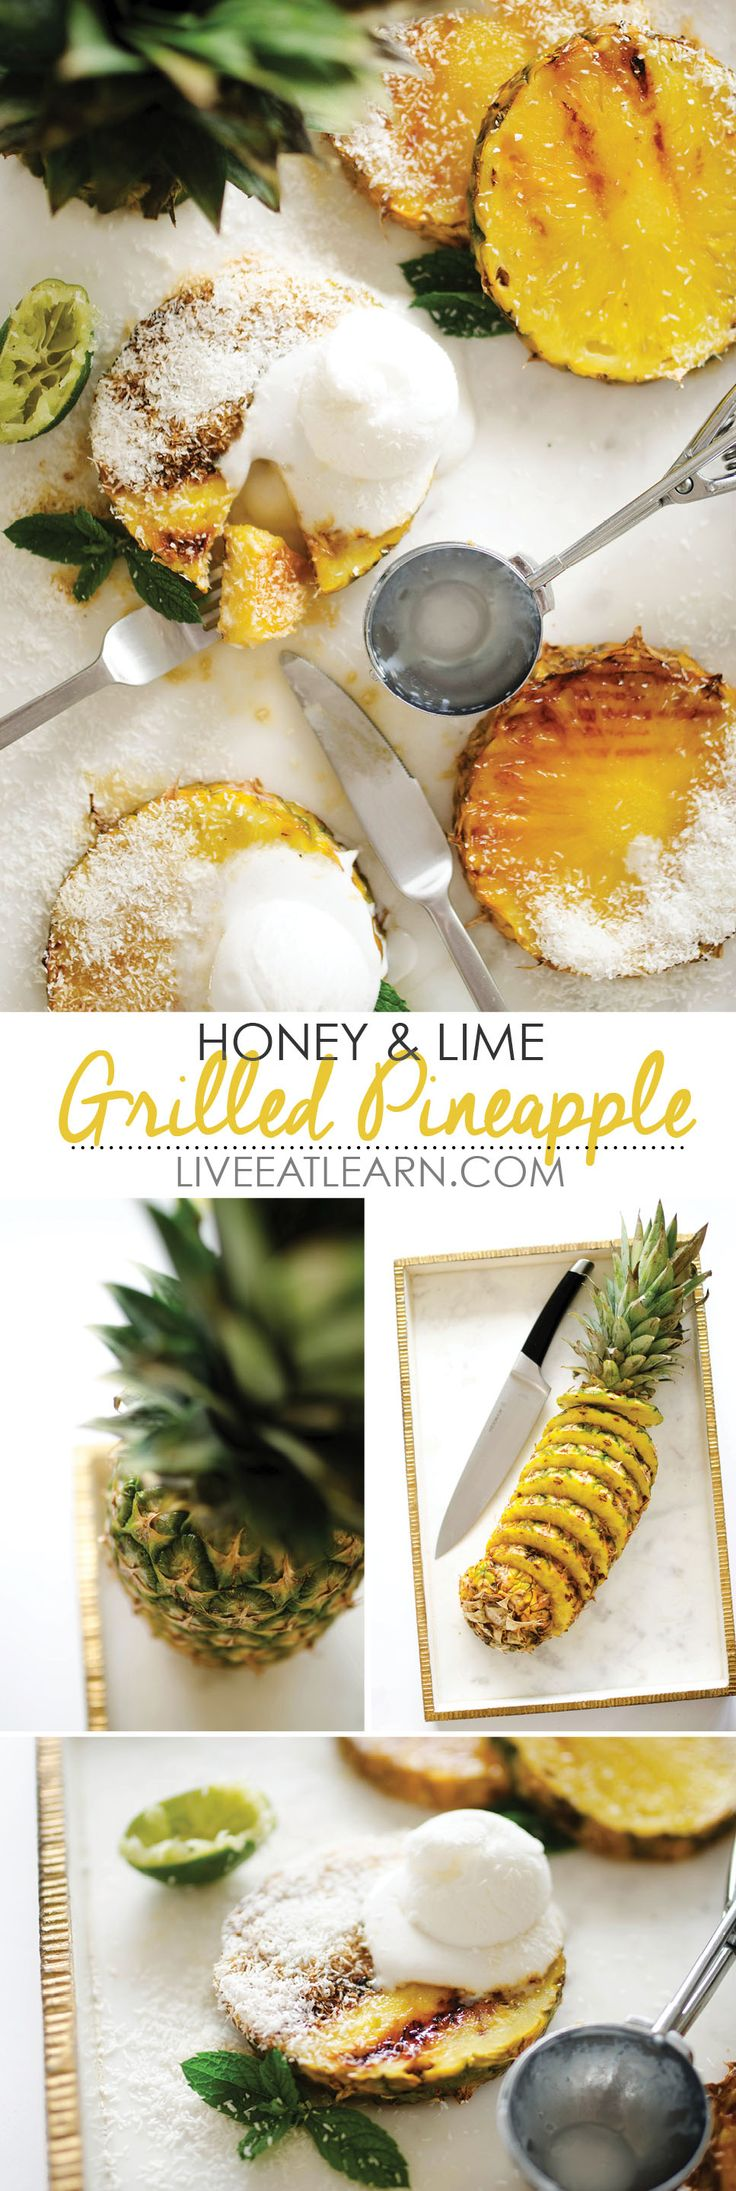 This Honey and Lime Grilled Pineapple recipe is a healthy and quick taste of the tropics. Whip it up for breakfast, snack, or dessert. Top it with coconut ice cream or Greek yogurt. // Live Eat Learn